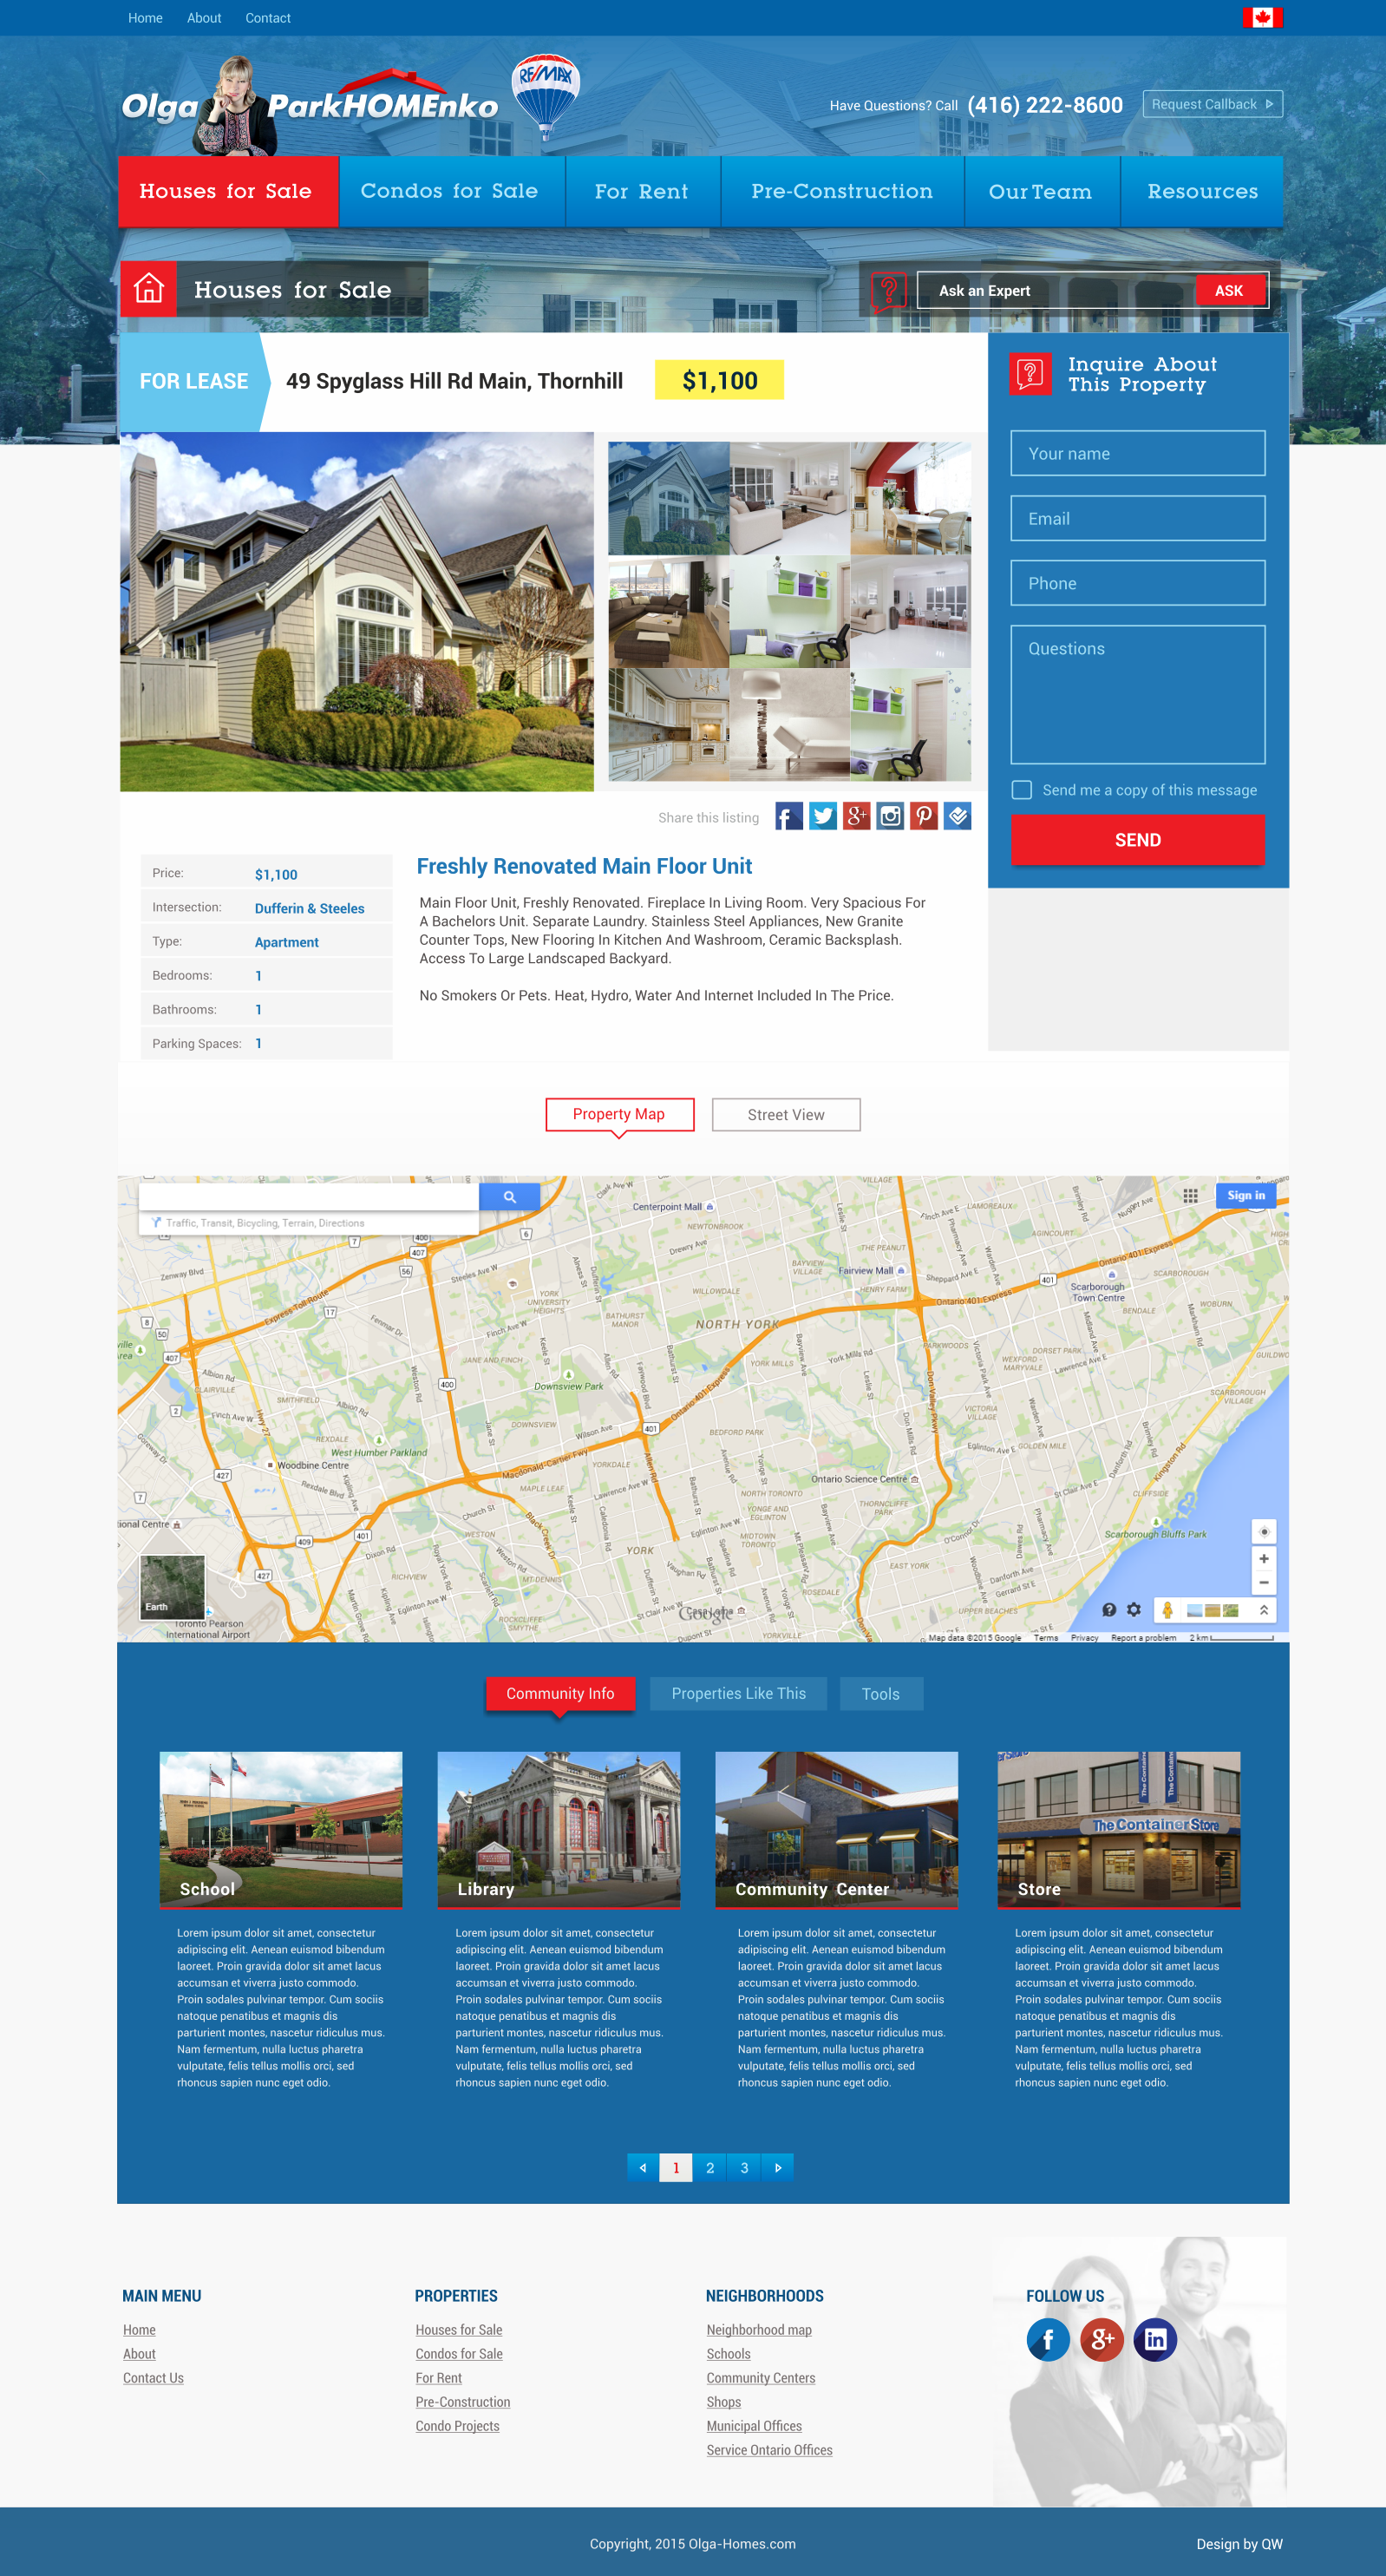 olga-houses-for-sale-listing-page